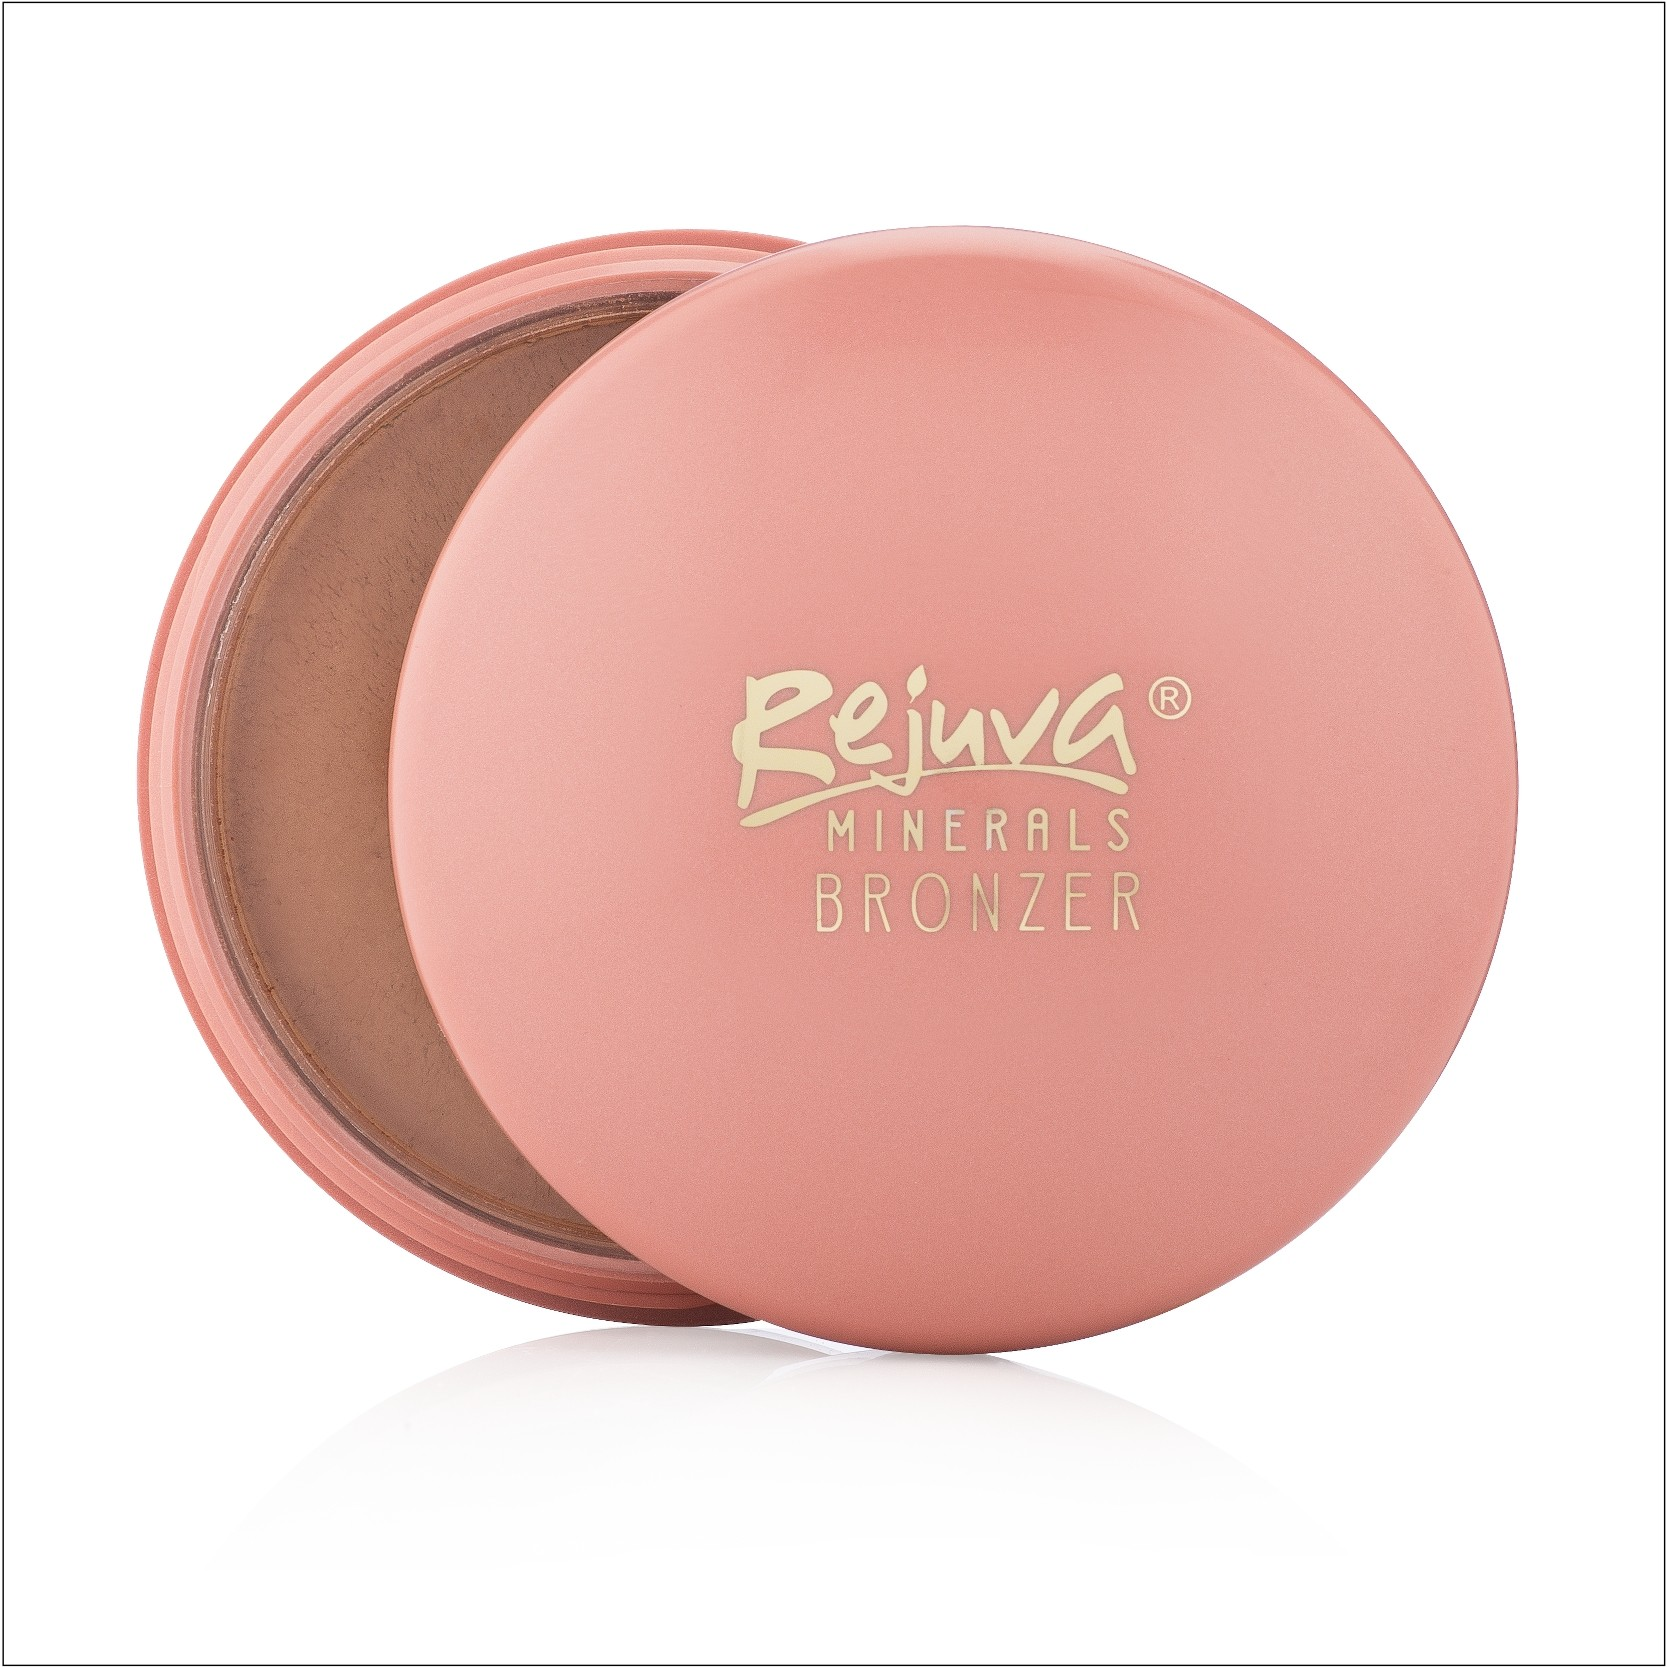 EWG VERIFIED™ 15.8 gm. Caribbean Bronzer